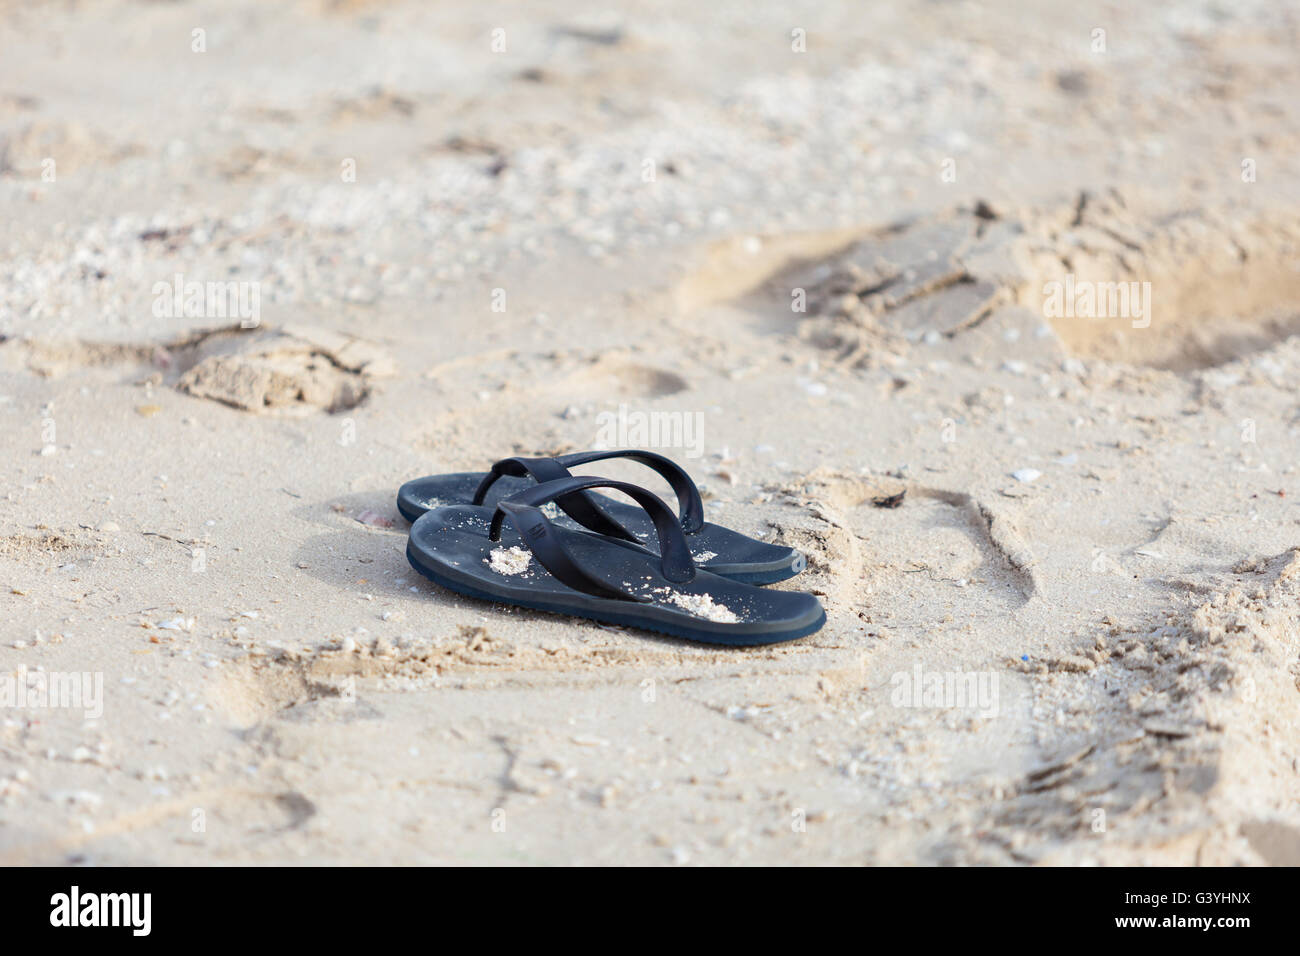 Flip flops, thongs, slides,  abandoned on sandy beach by the sea - Stock Image